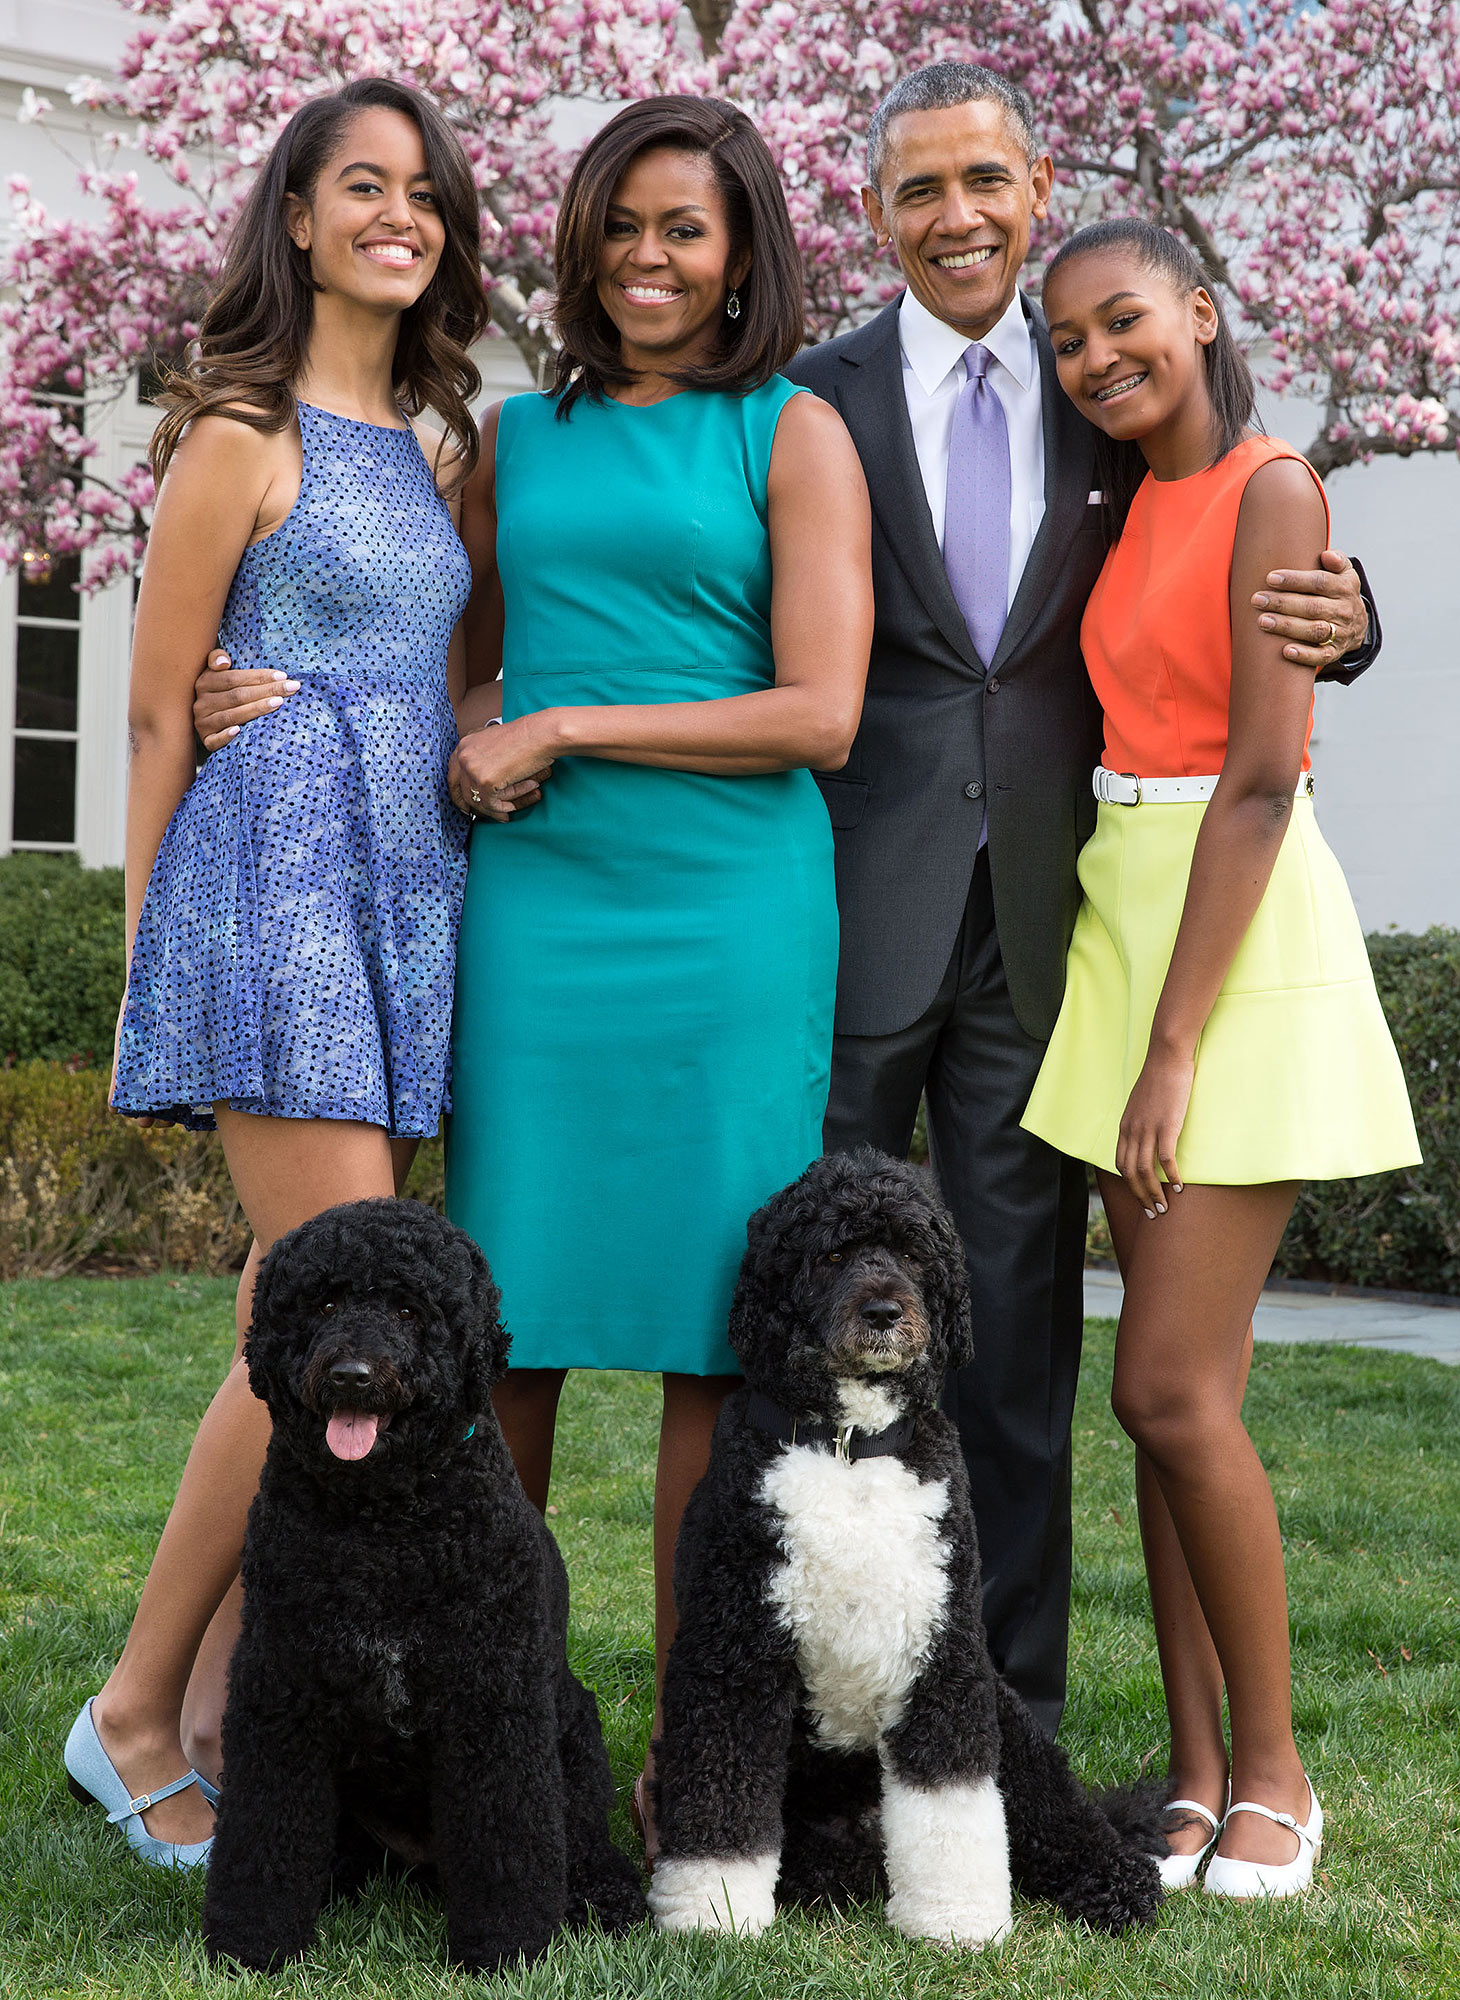 President Barack Obama, First Lady Michelle Obama, and daughters Malia and Sasha